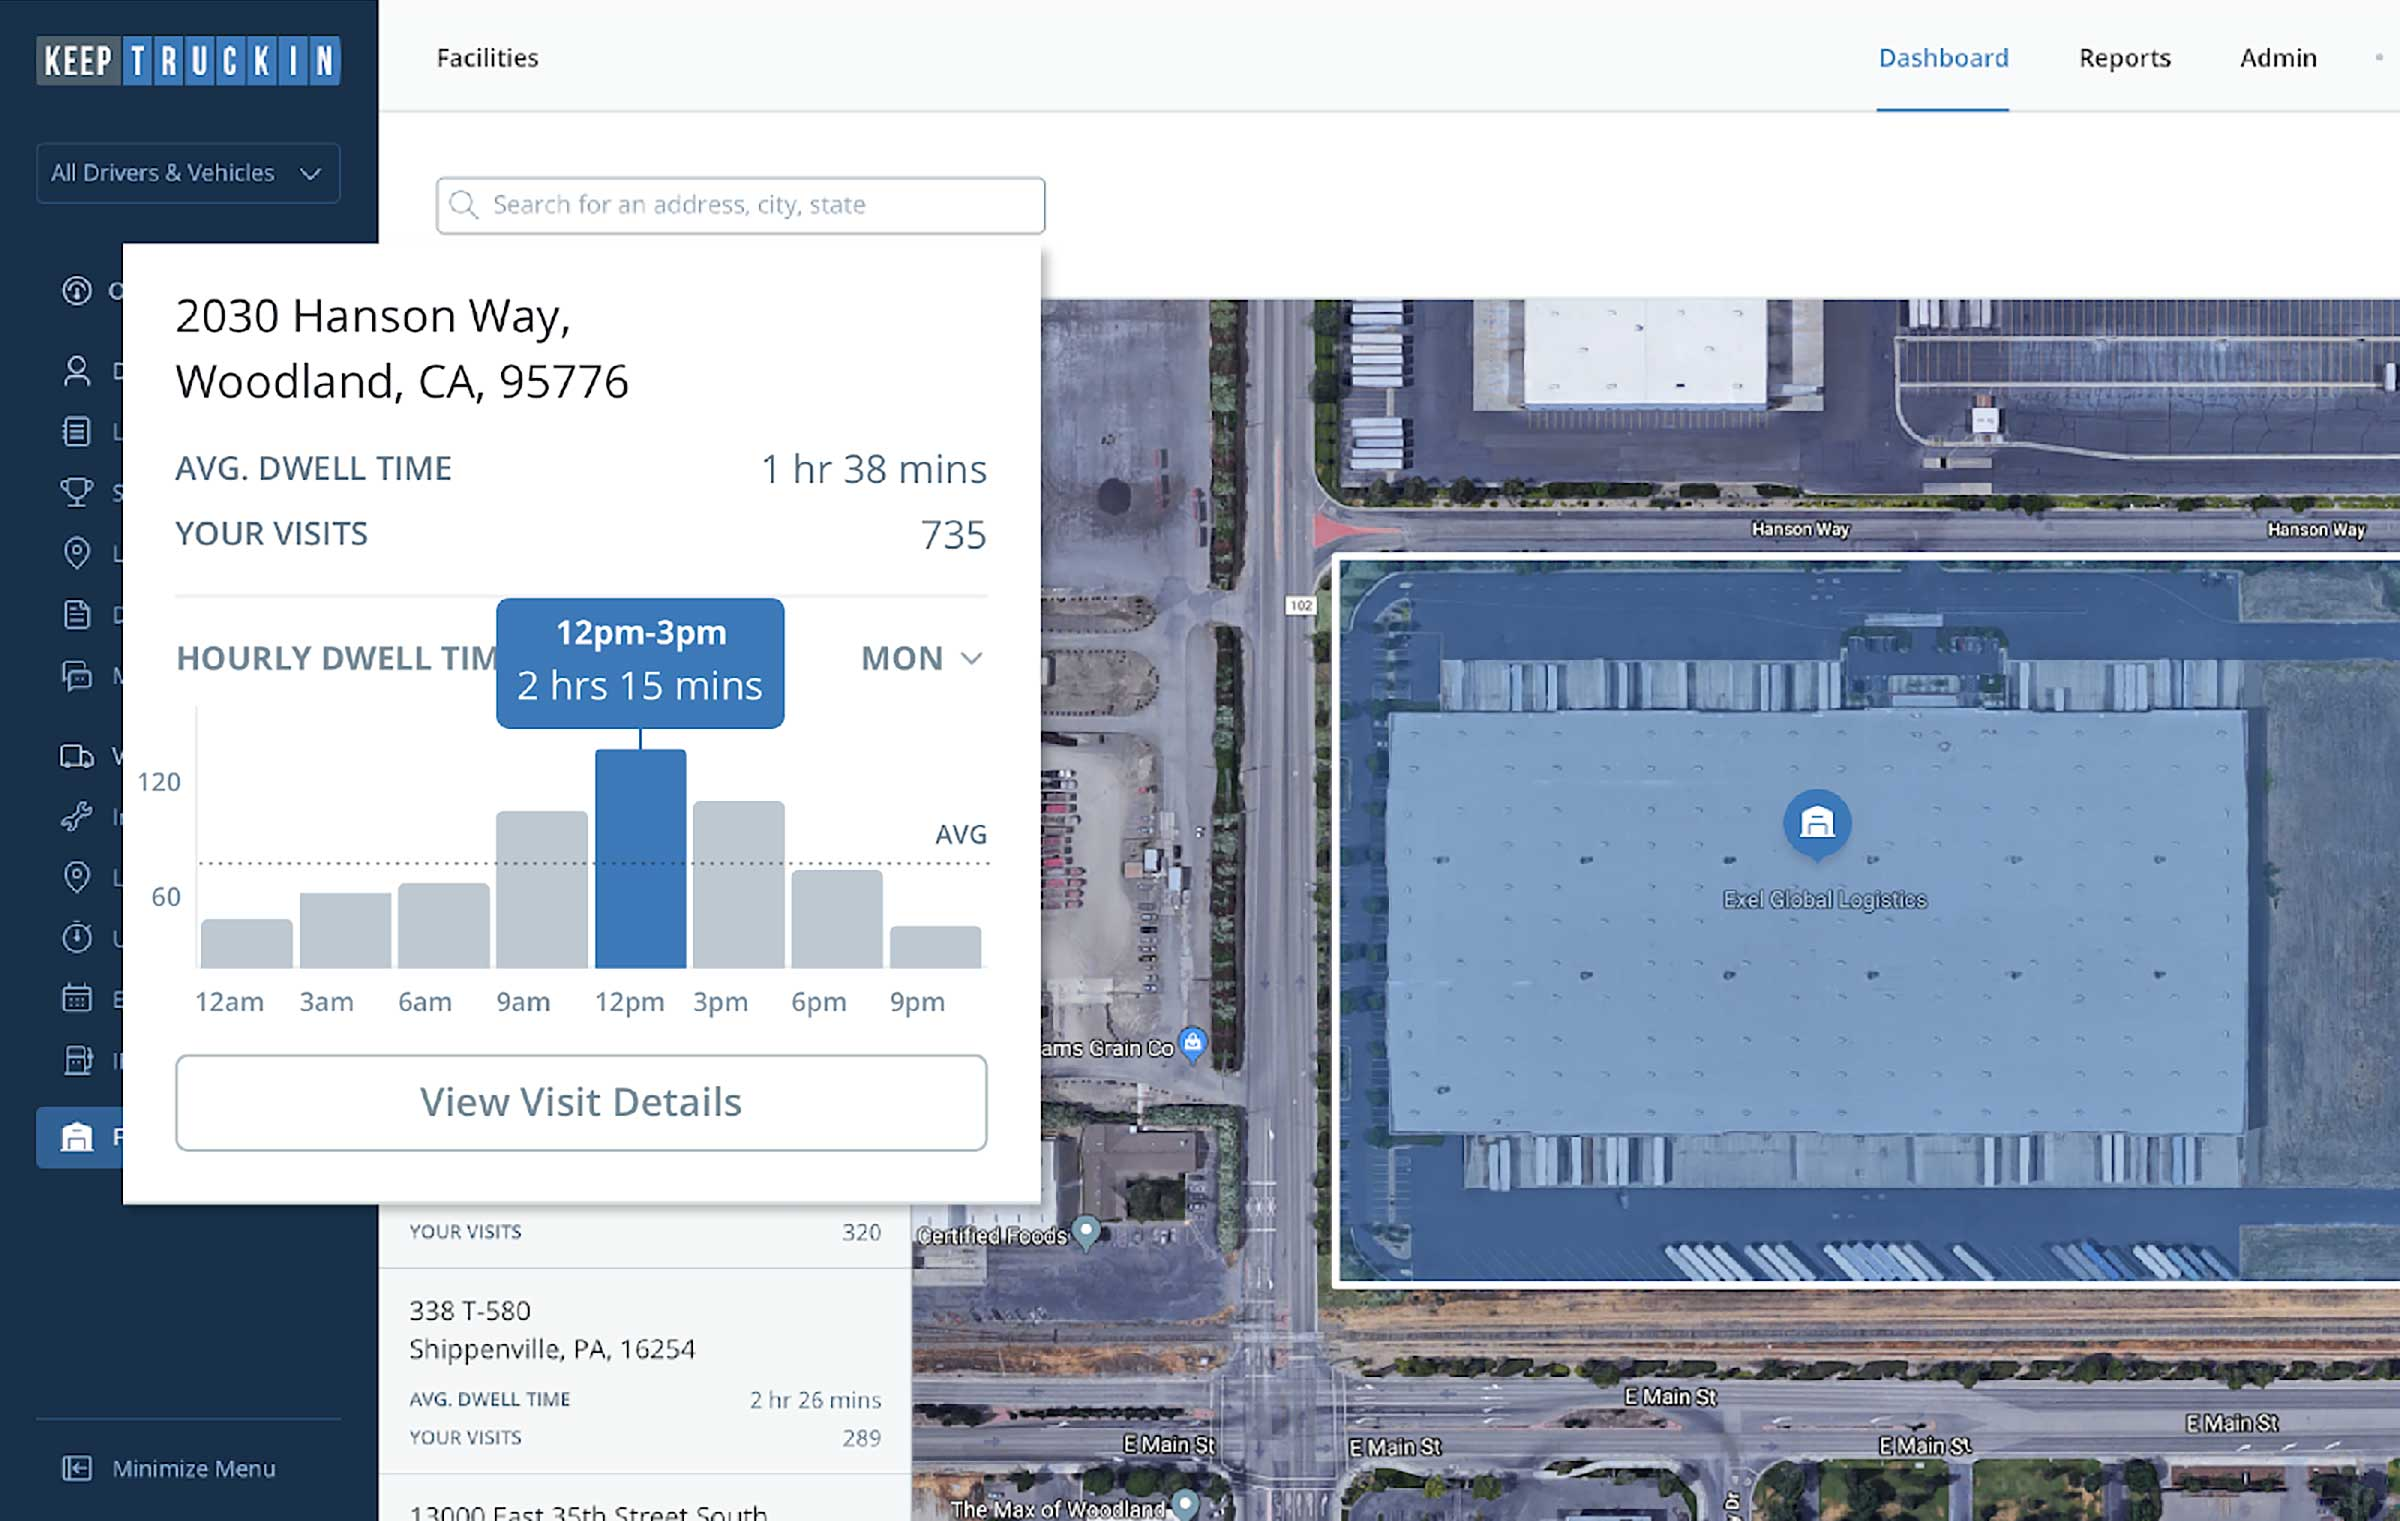 Facility Insights - Average Dwell Time